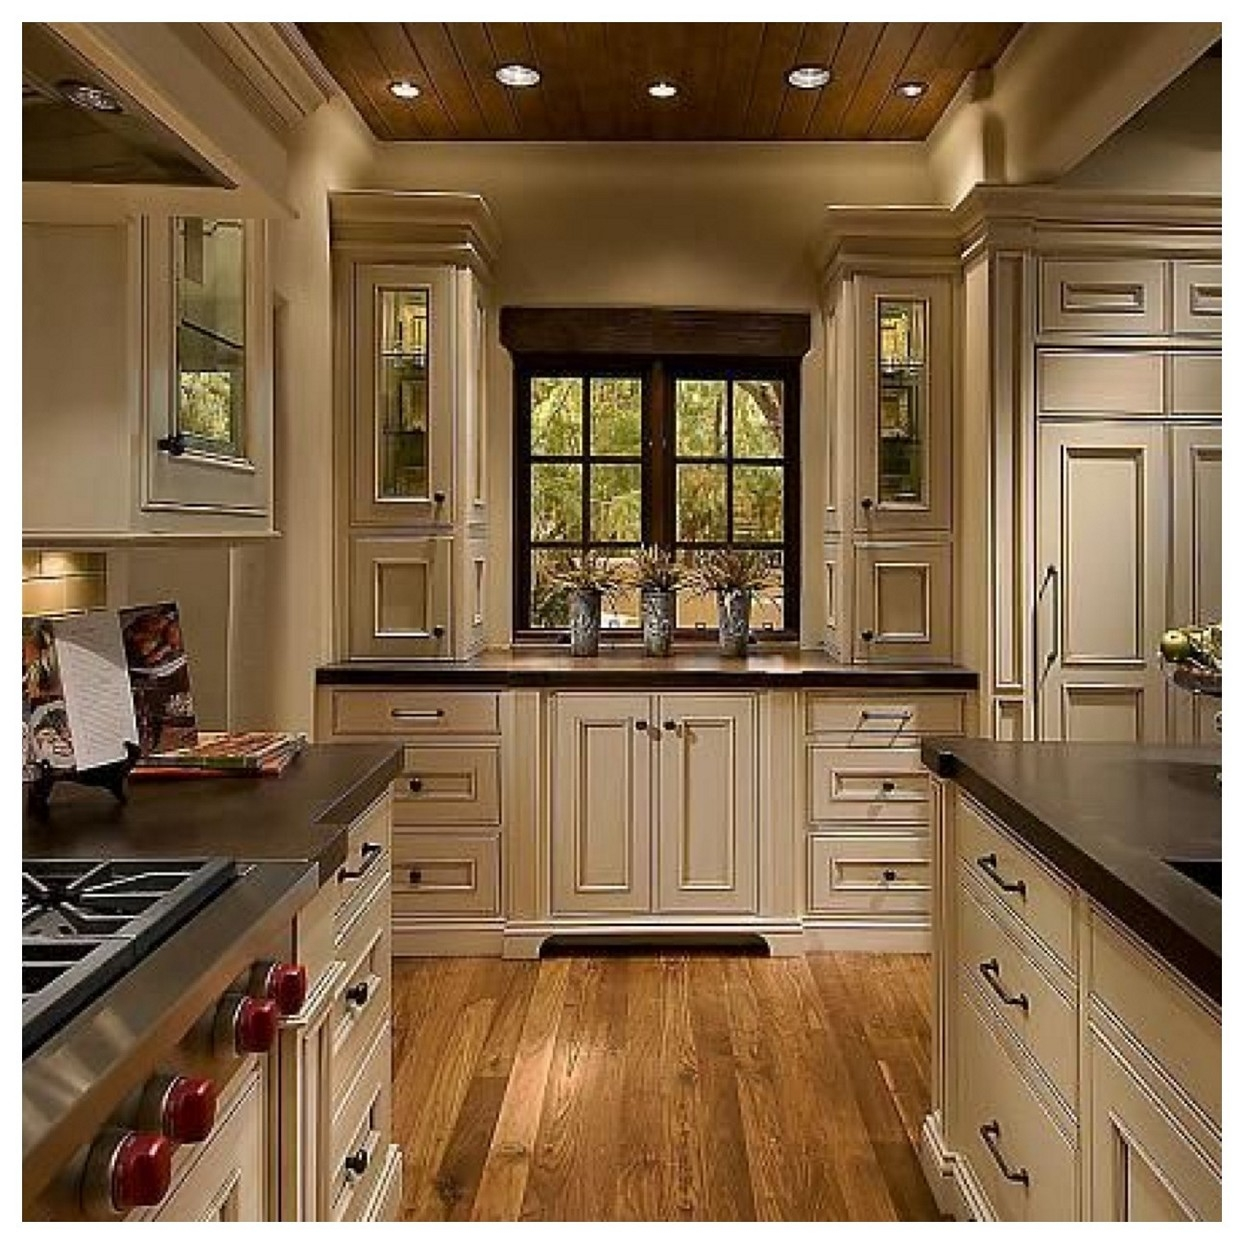 Matching Wood Floors To Cabinets